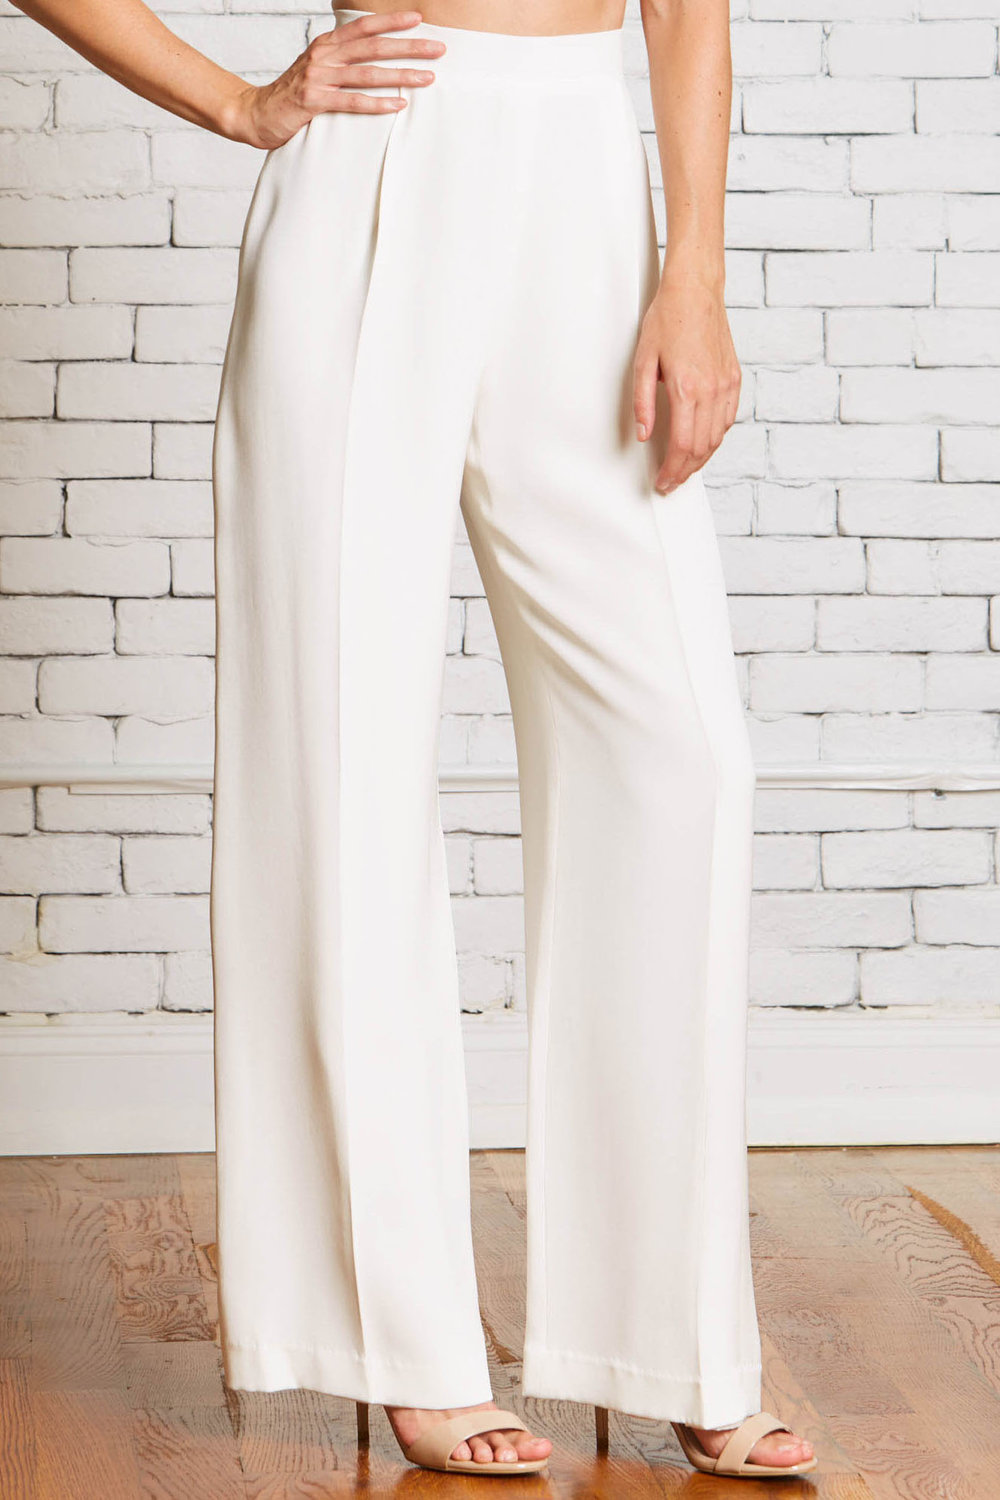 27a.Rebecca_Schoneveld_Camden_Trouser_Modern_Wedding_Look_Pants_High_waisted_style.jpg